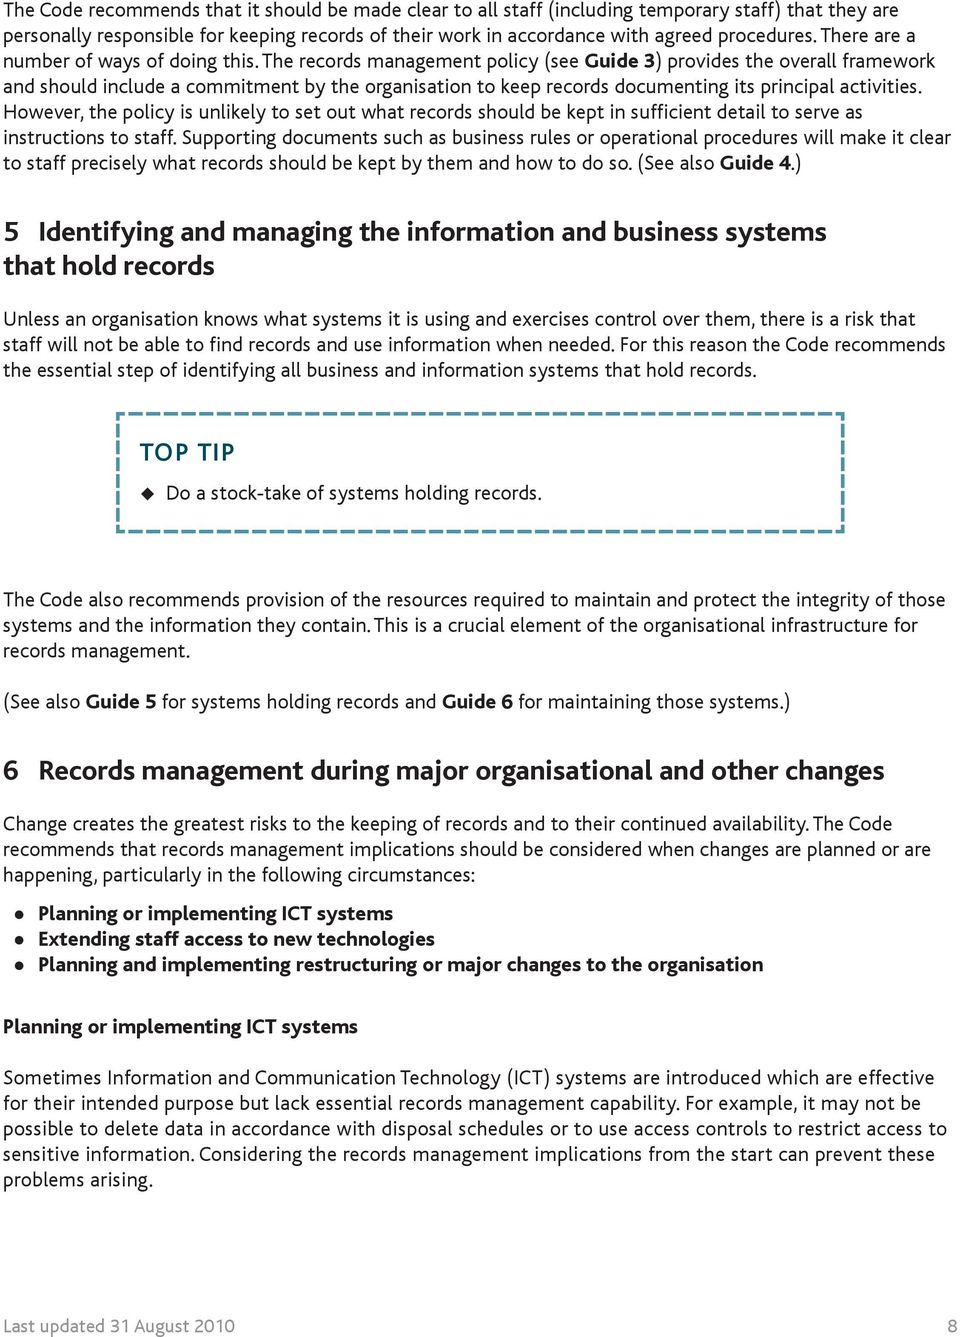 The records management policy (see Guide 3) provides the overall framework and should include a commitment by the organisation to keep records documenting its principal activities.